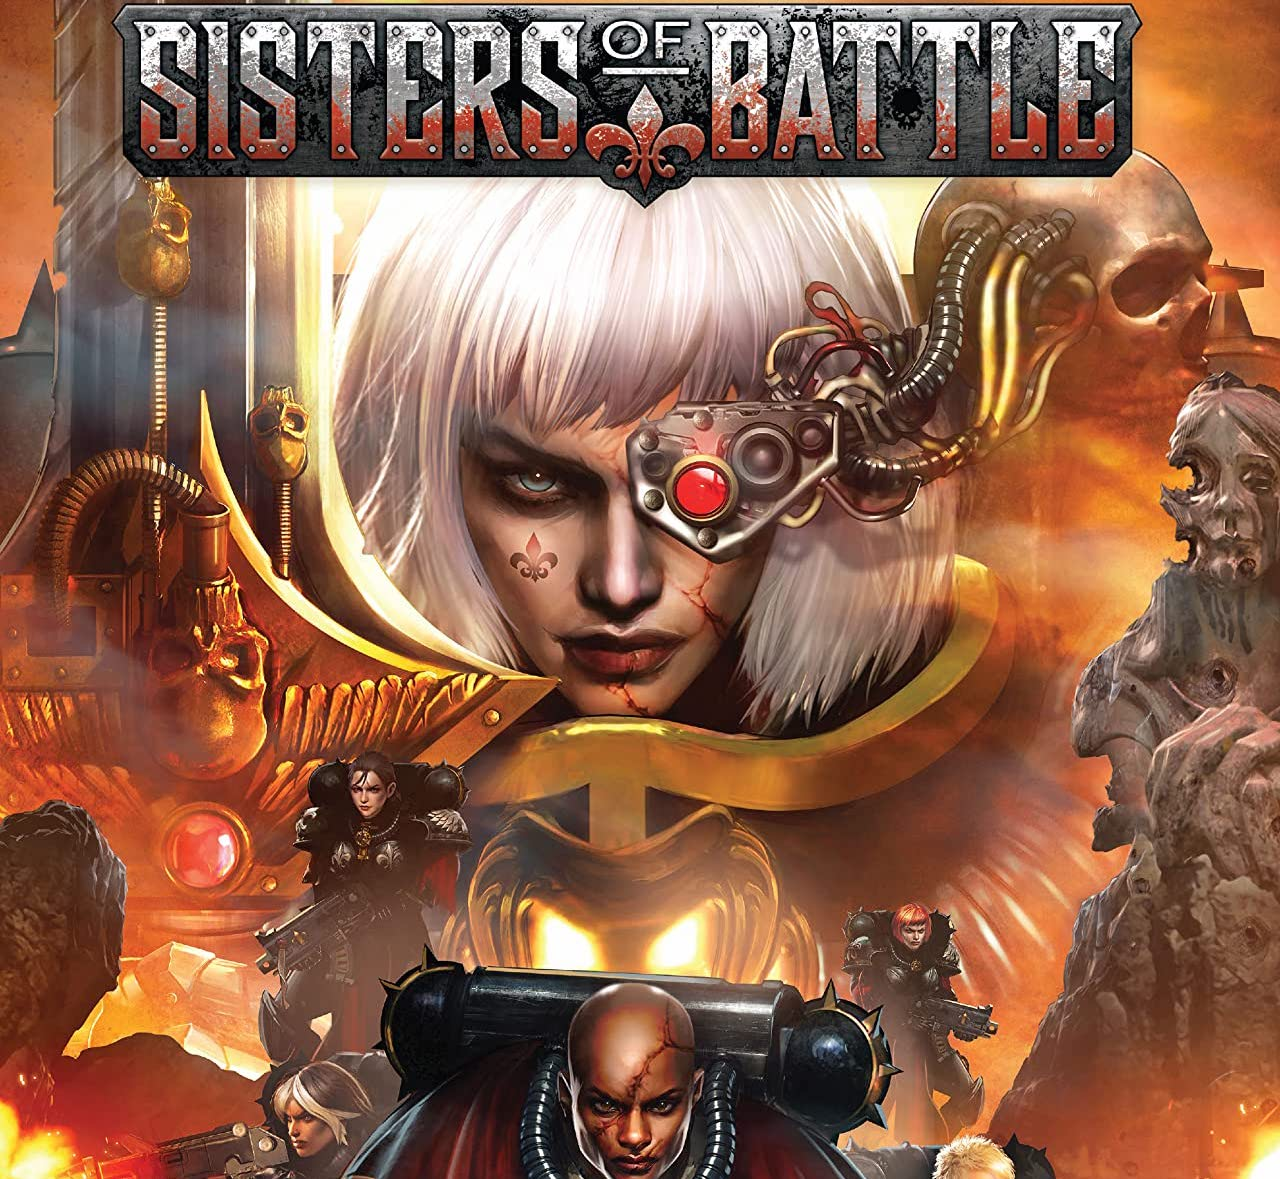 'Warhammer 40,000: Sisters of Battle' #1 drops you into a compelling battle